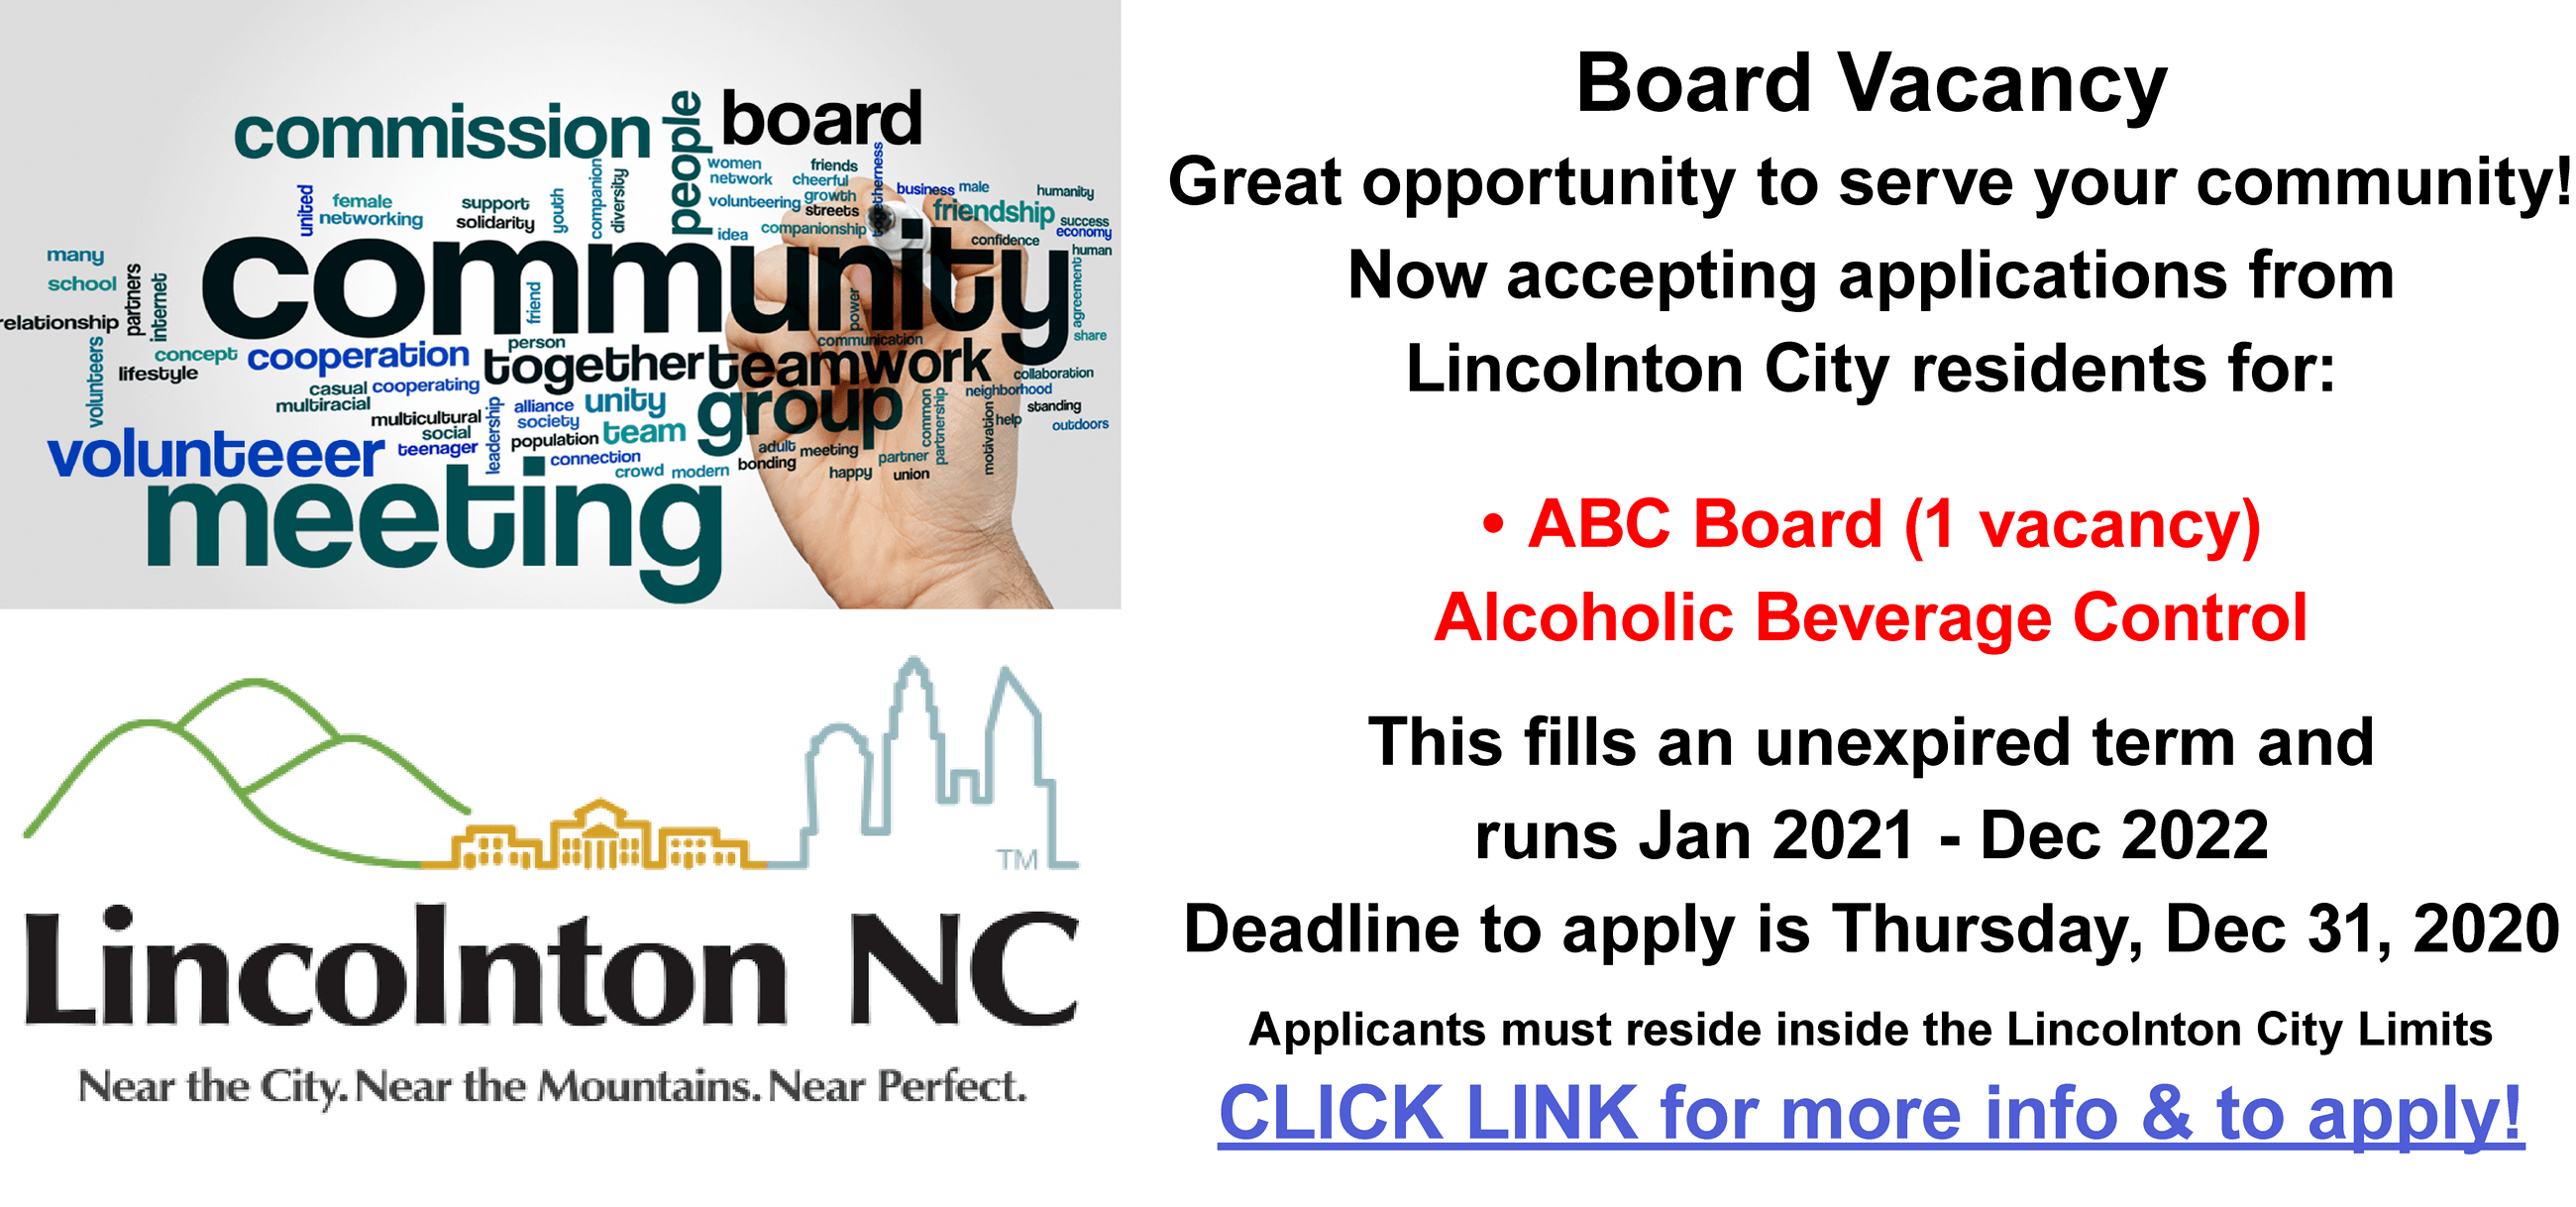 12.18.20 Board vacancy - ABC